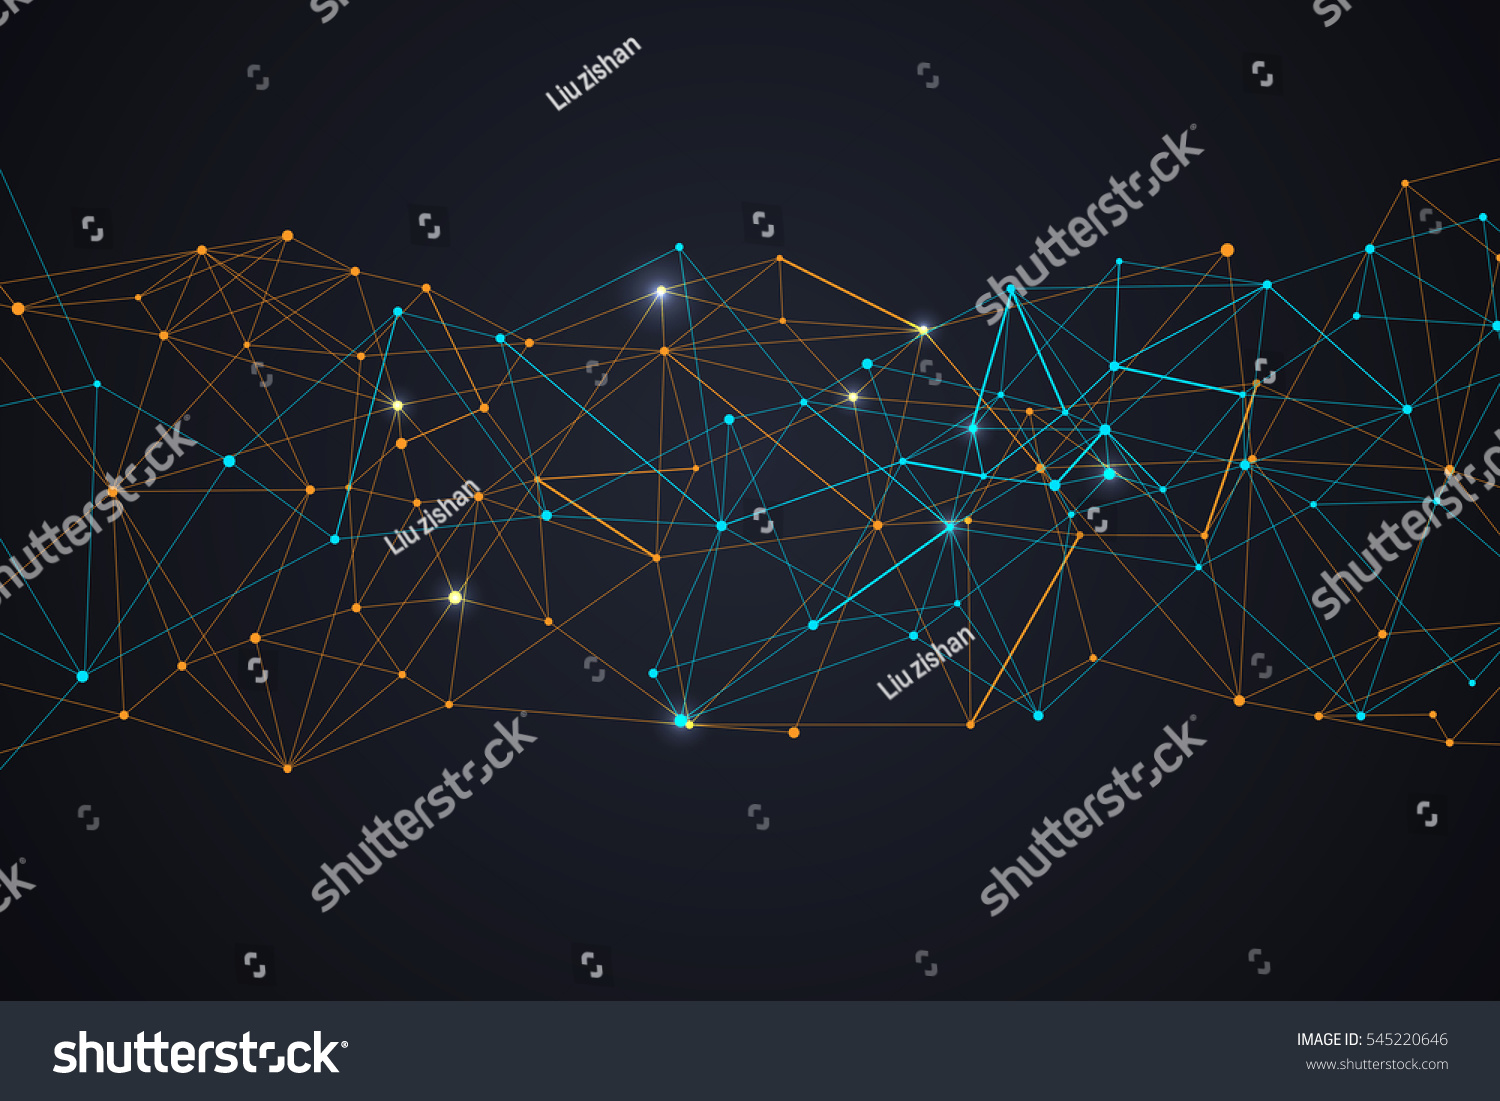 Internet Connection Abstract Sense Of Science And Technology Diagram Graphic Design Vector Illustration Ez Canvas